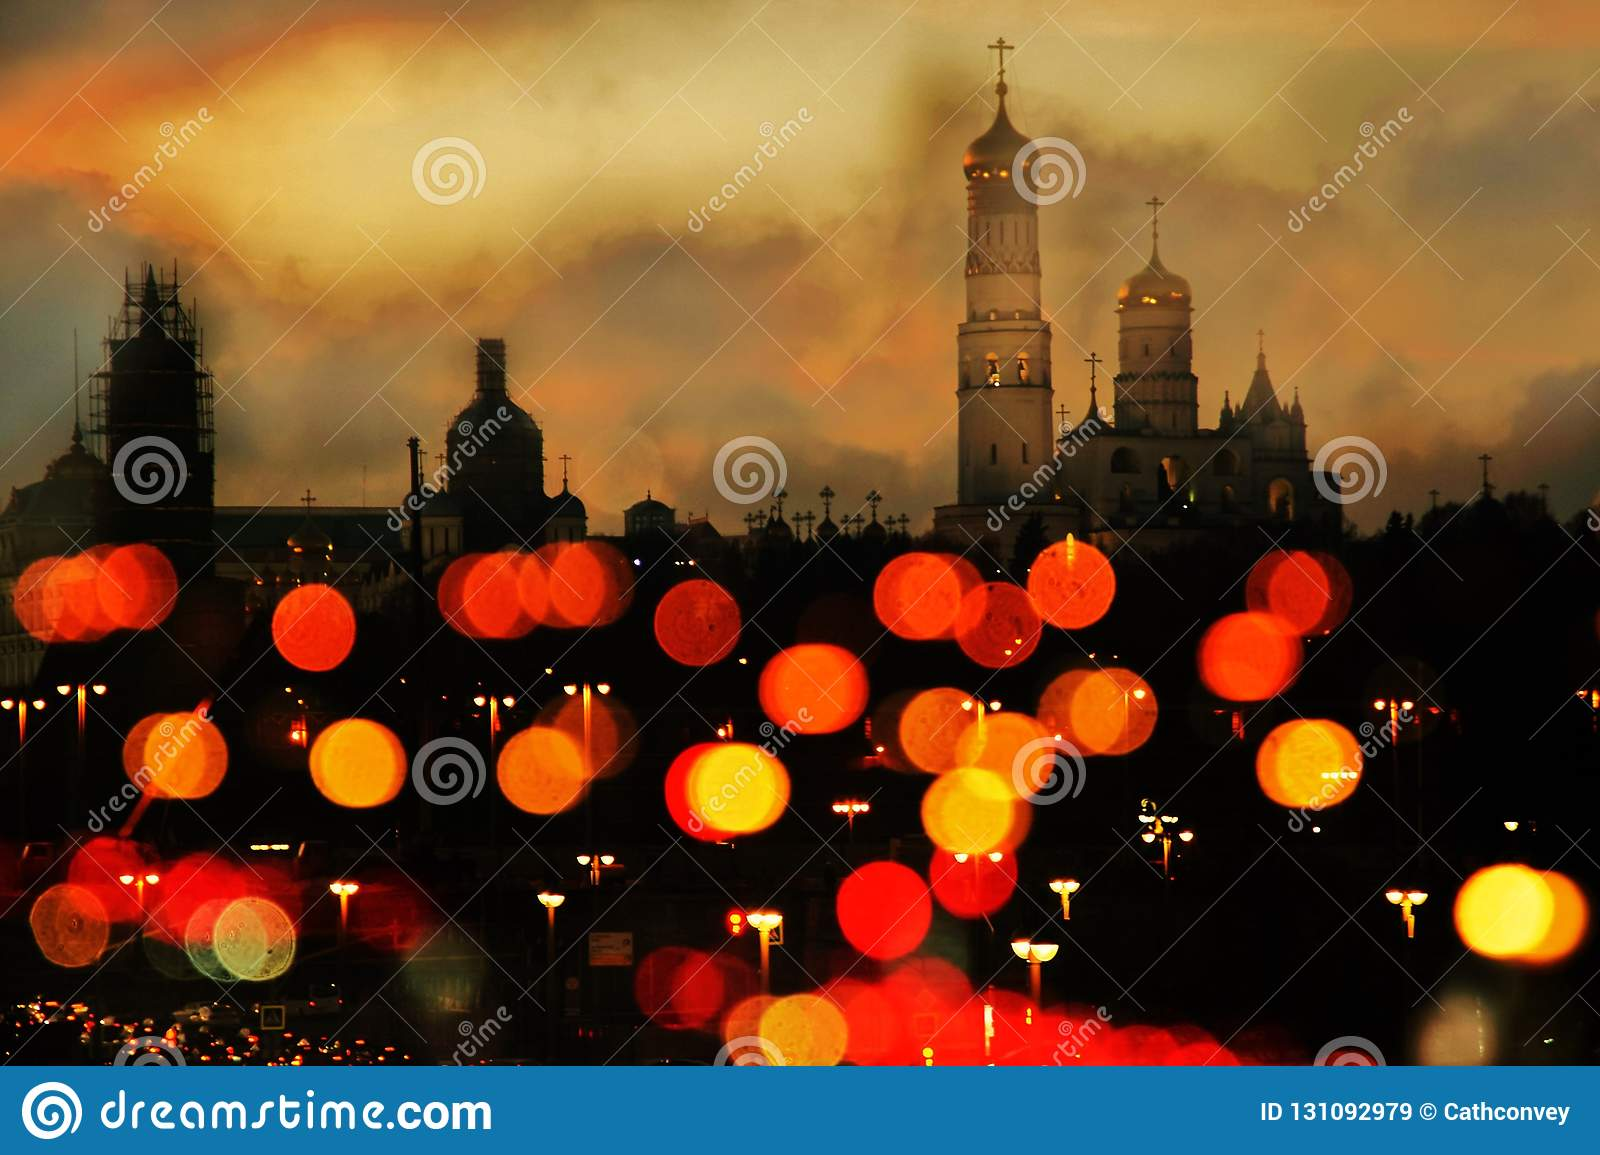 Moscow city silhouette. Moscow Kremlin at night.